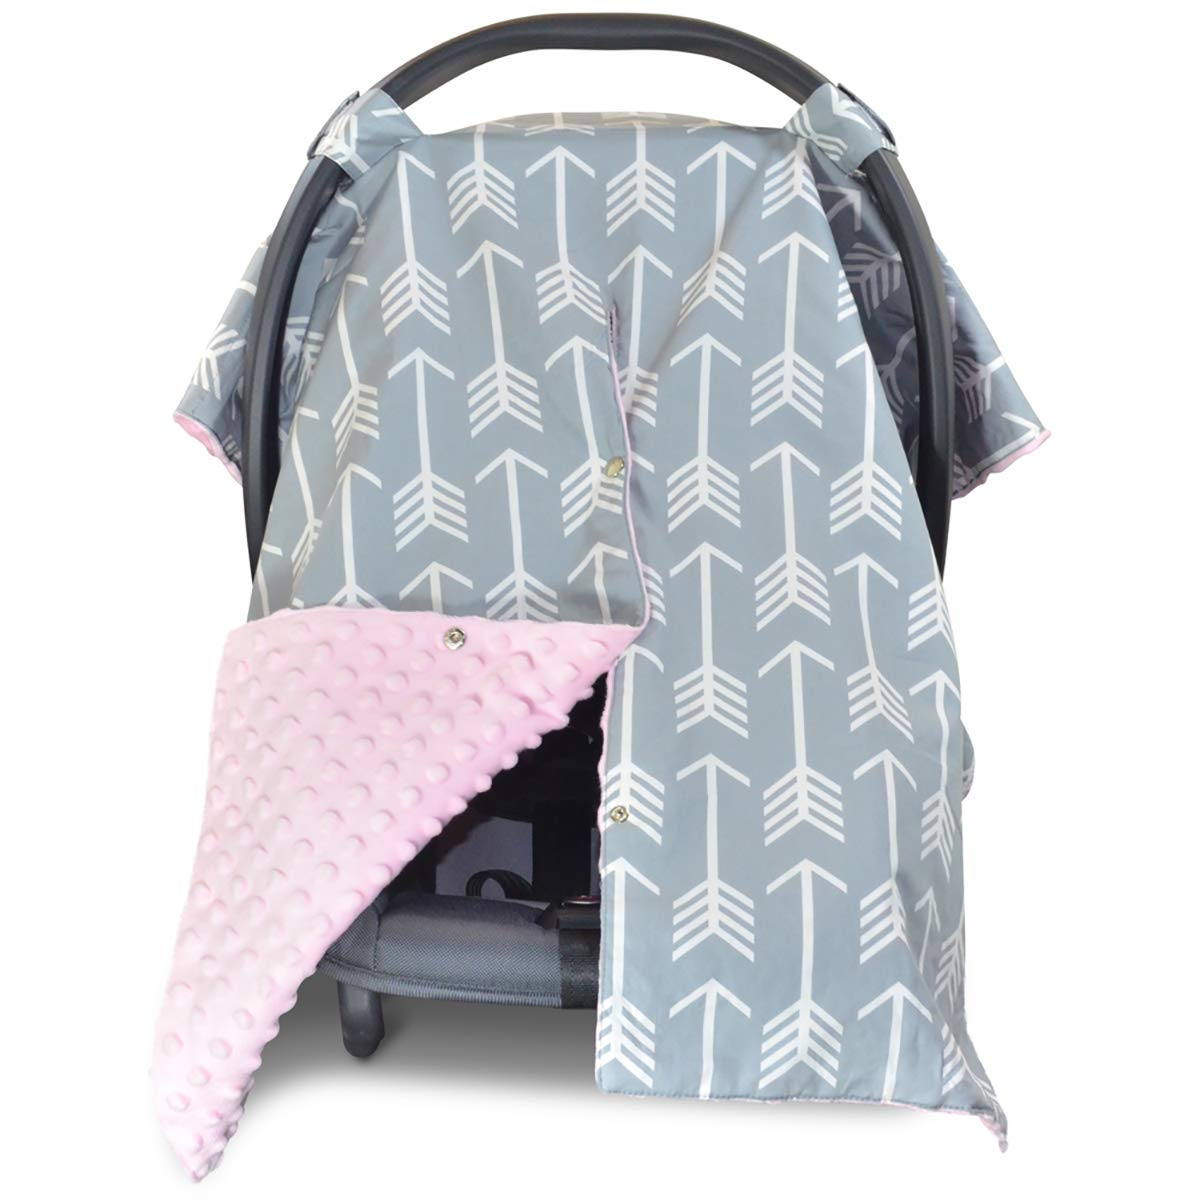 2 in 1 Carseat Canopy and Nursing Cover Up with Peekaboo Opening   Large Infant Car Seat Canopy for Girl or Boy   Best Baby Shower Gift for Breastfeeding Moms   Arrow Pattern with Soft Pink Minky